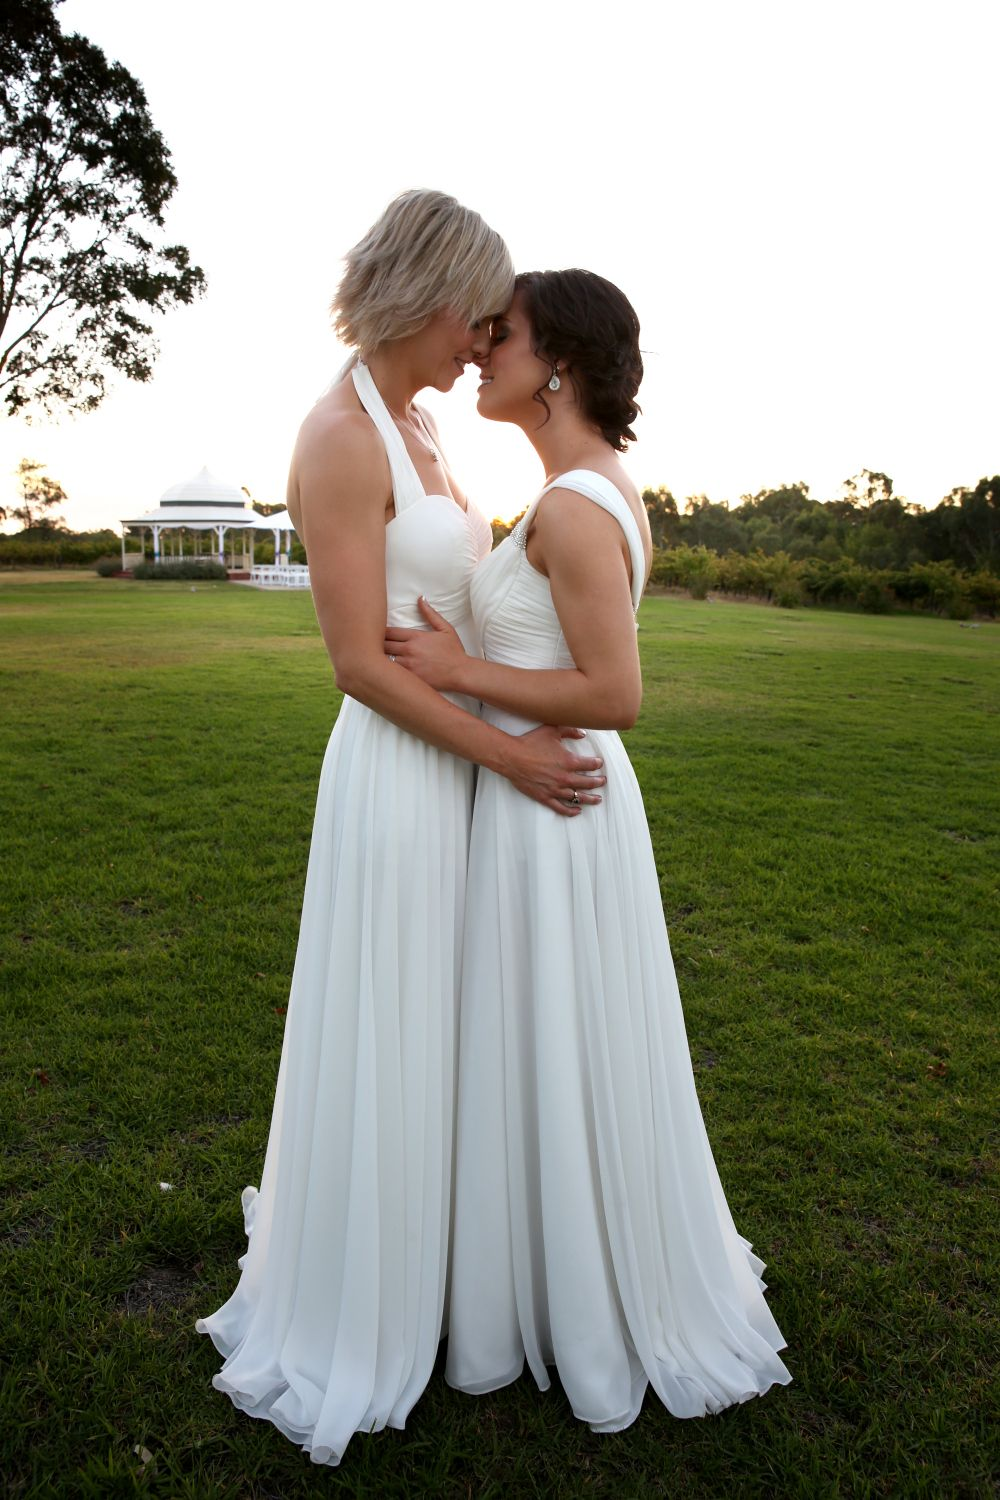 nat and amy had their perfect day on the 23rd of march